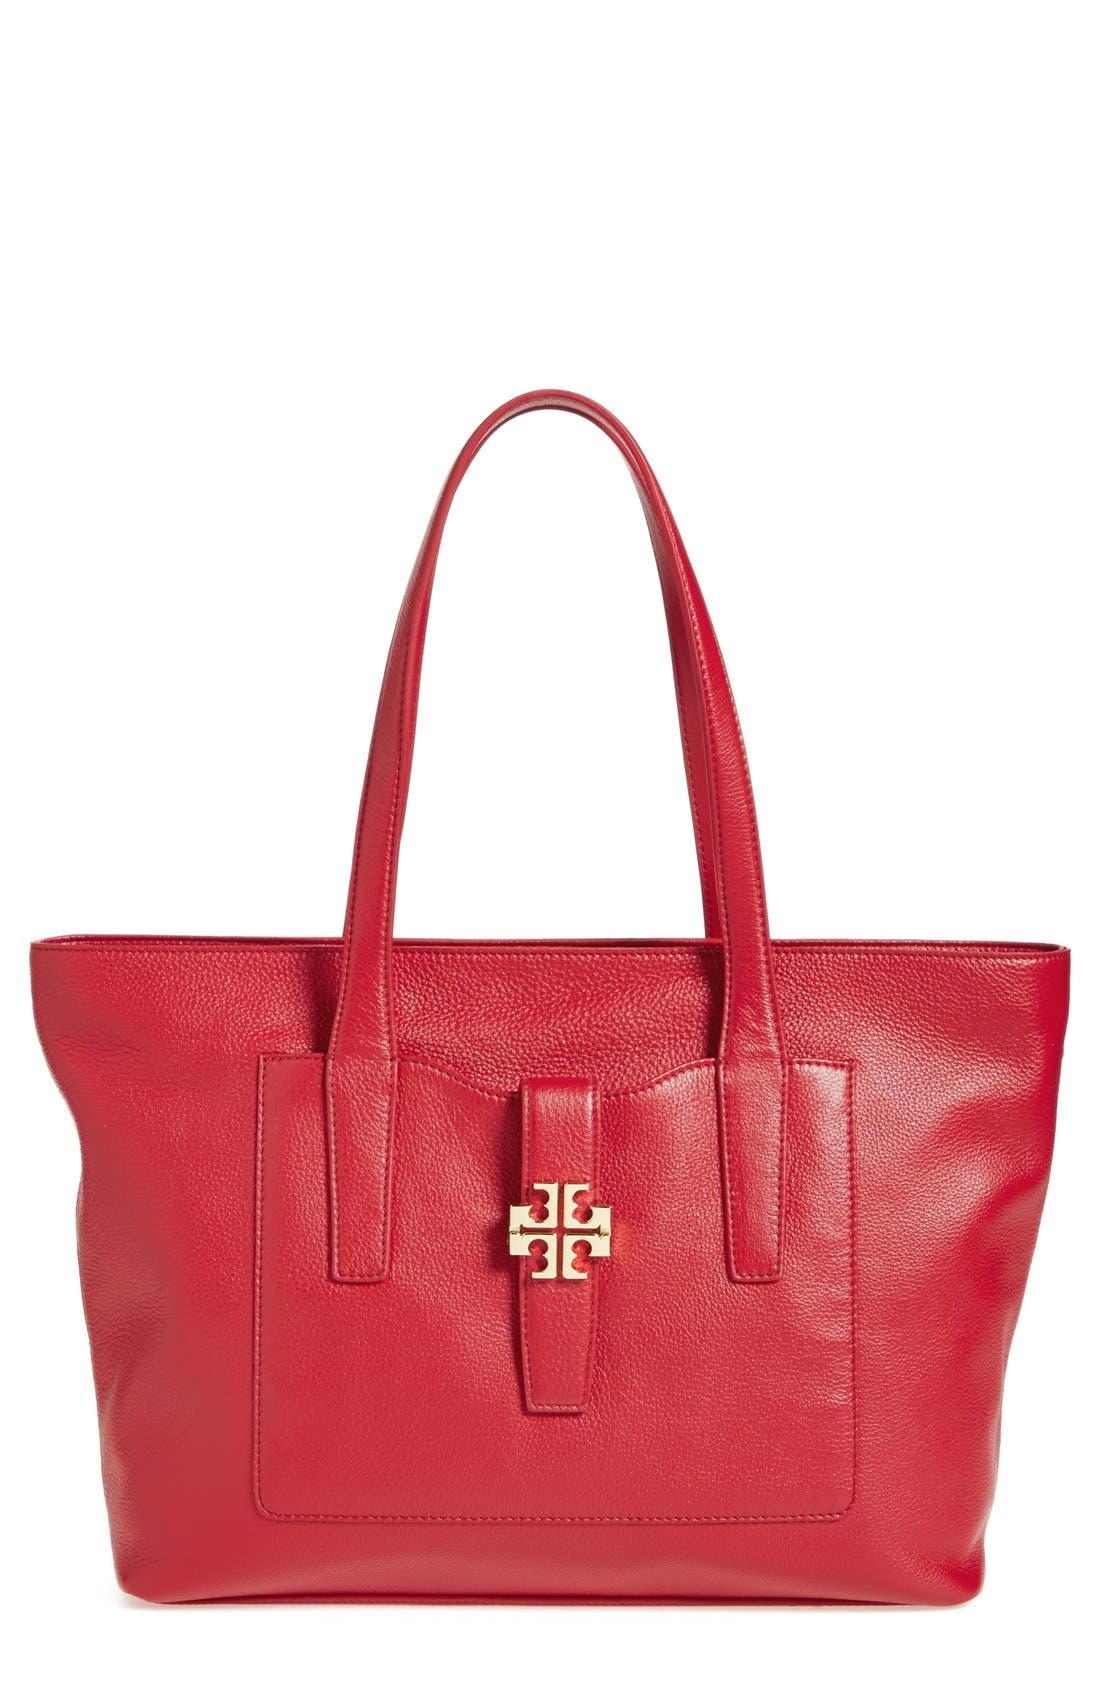 Alternate Image 1 Selected - Tory Burch 'Plaque' Tote